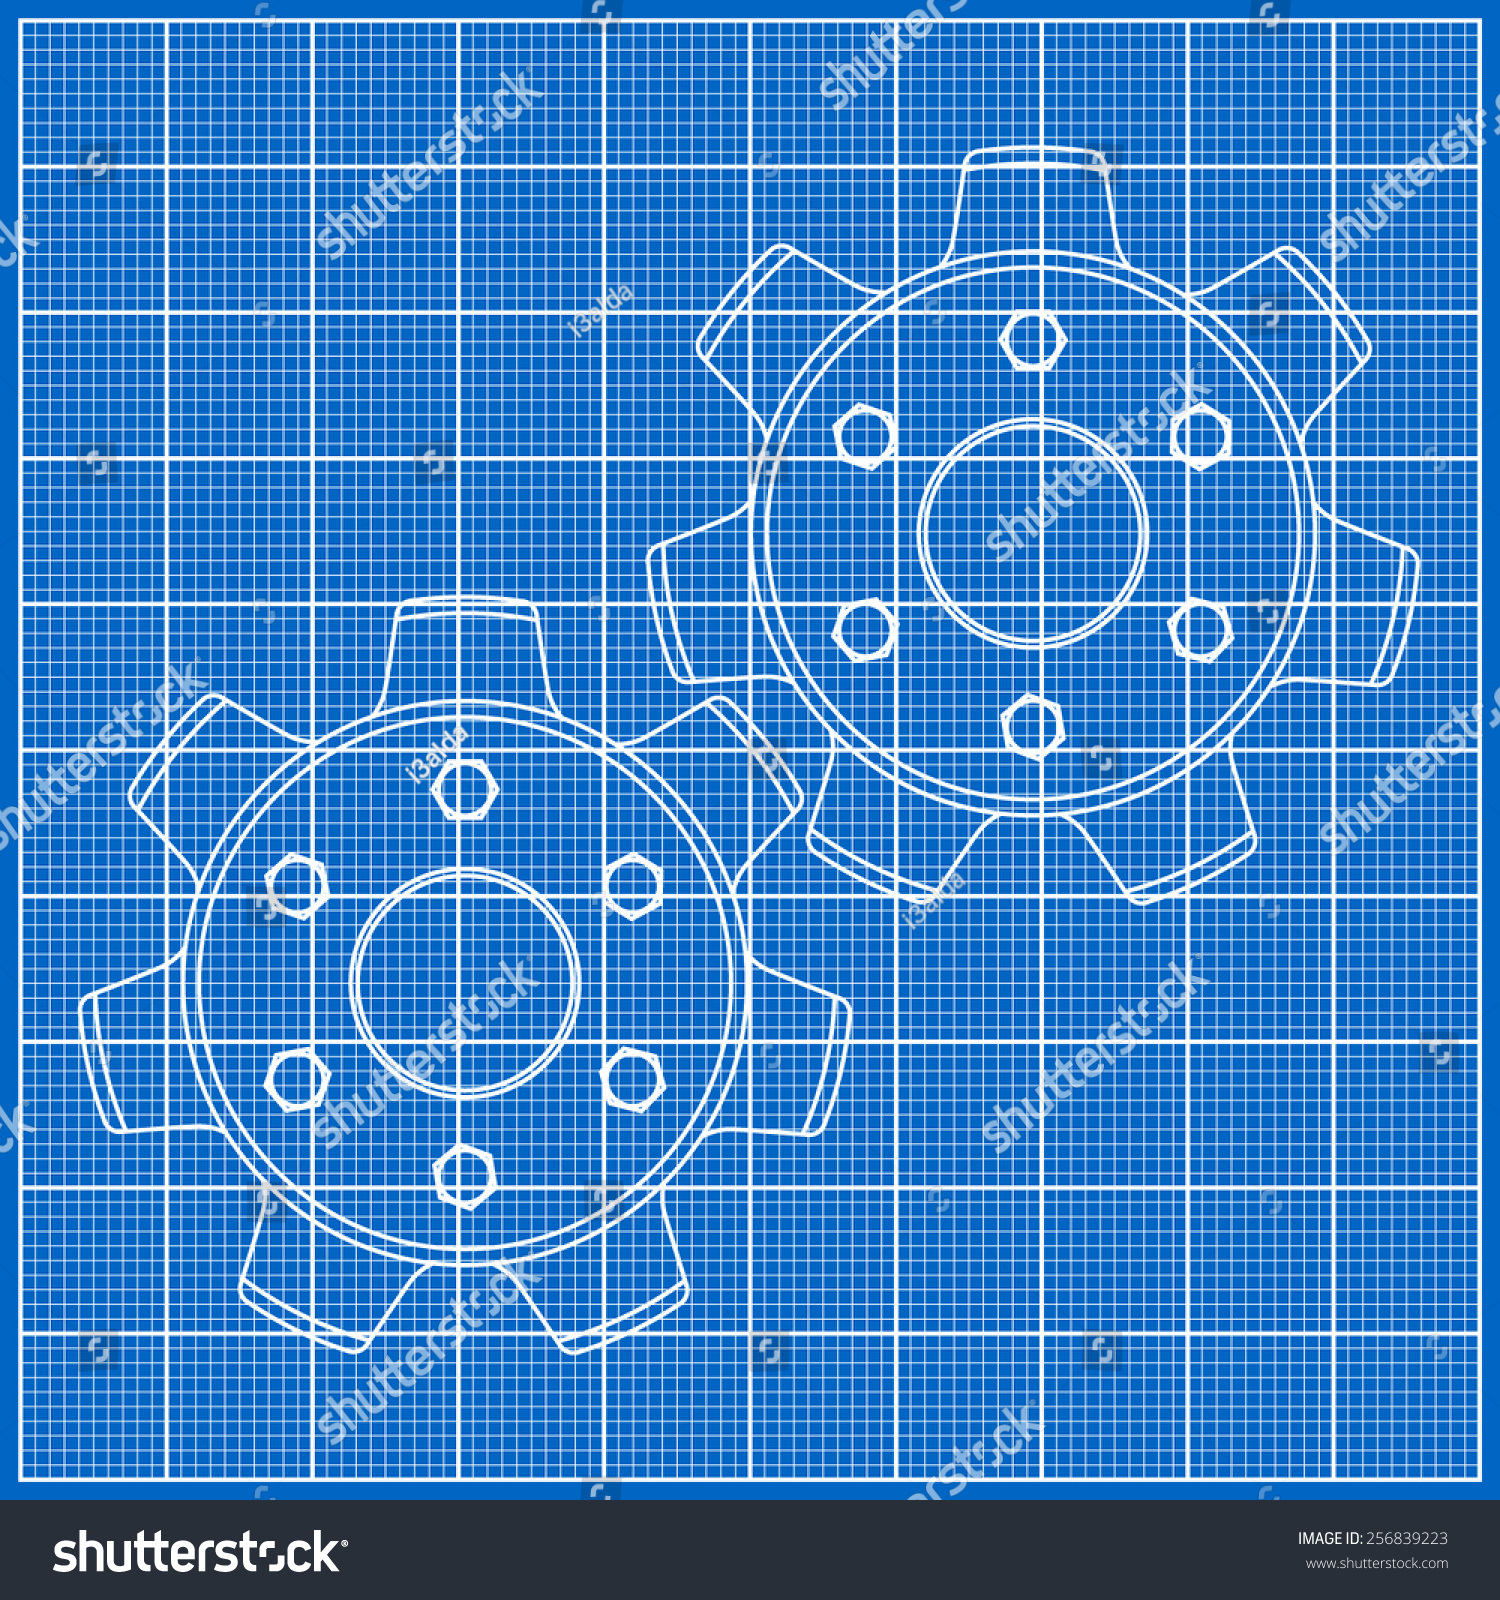 Cogs gears on blueprint paper vector stock vector 256839223 cogs gears on blueprint paper vector illustration malvernweather Choice Image